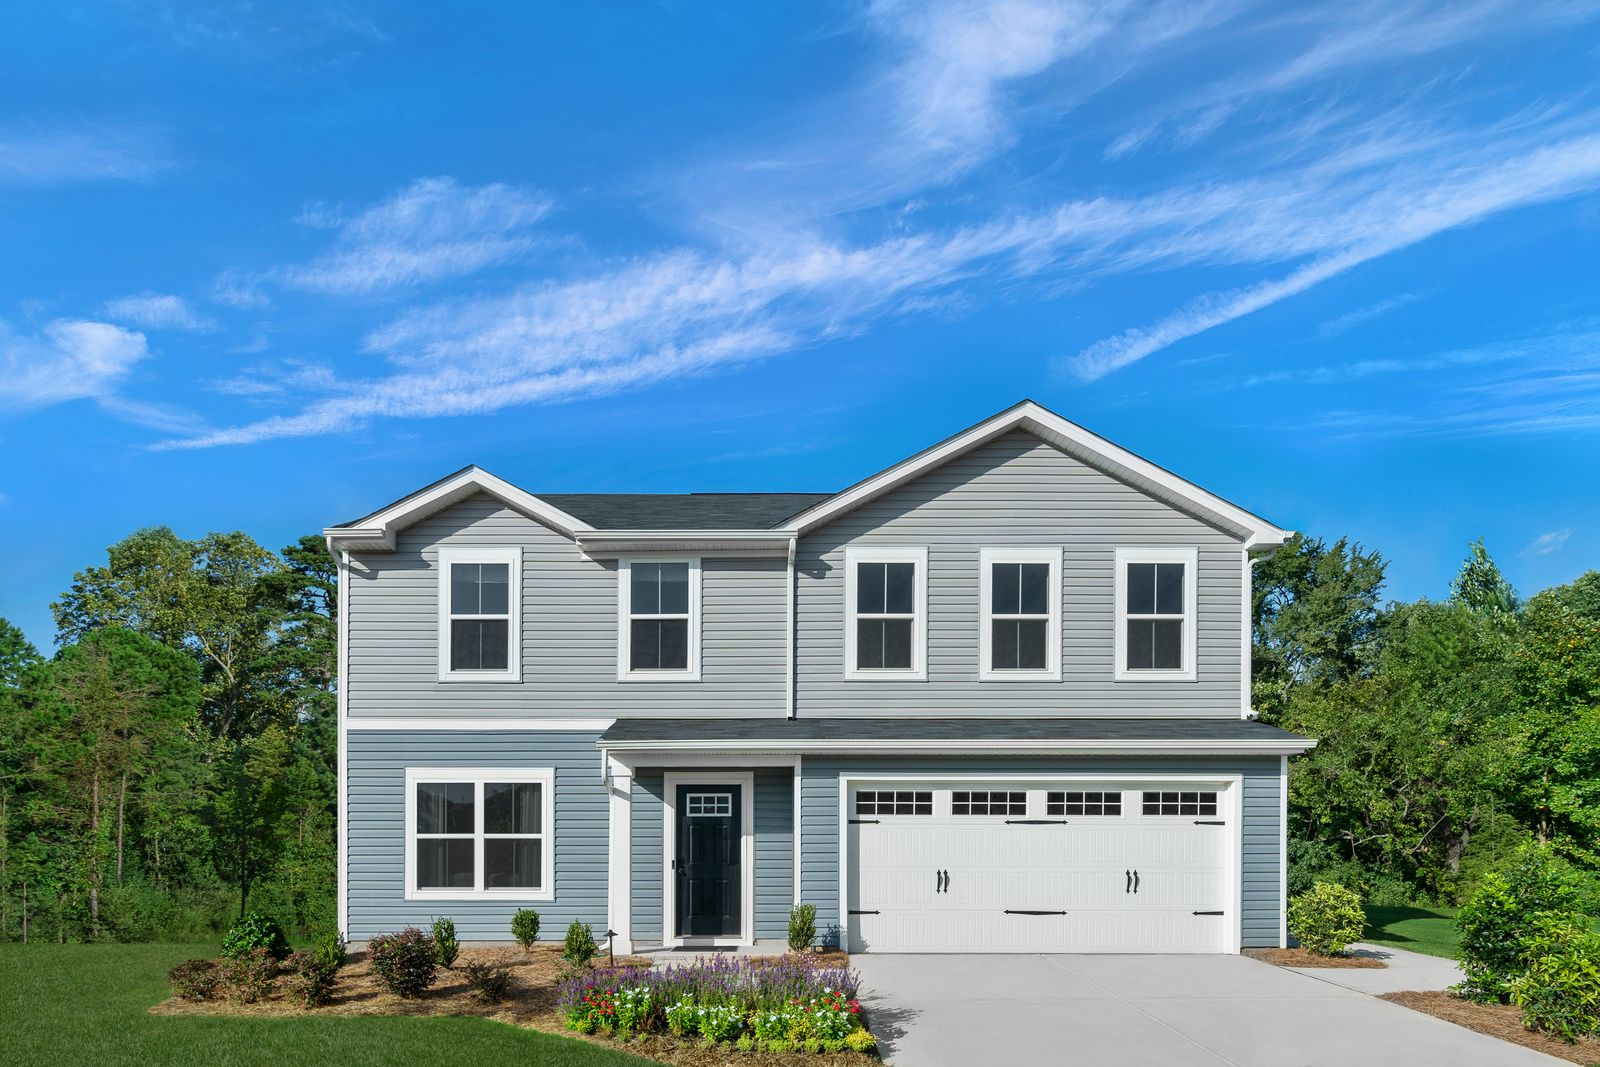 BEST NEW HOME VALUE CLOSE TO MOORESVILLE AND I-77:Ownfor the same or less than rent in a community offering green space and trails—Schedule a visittoday!